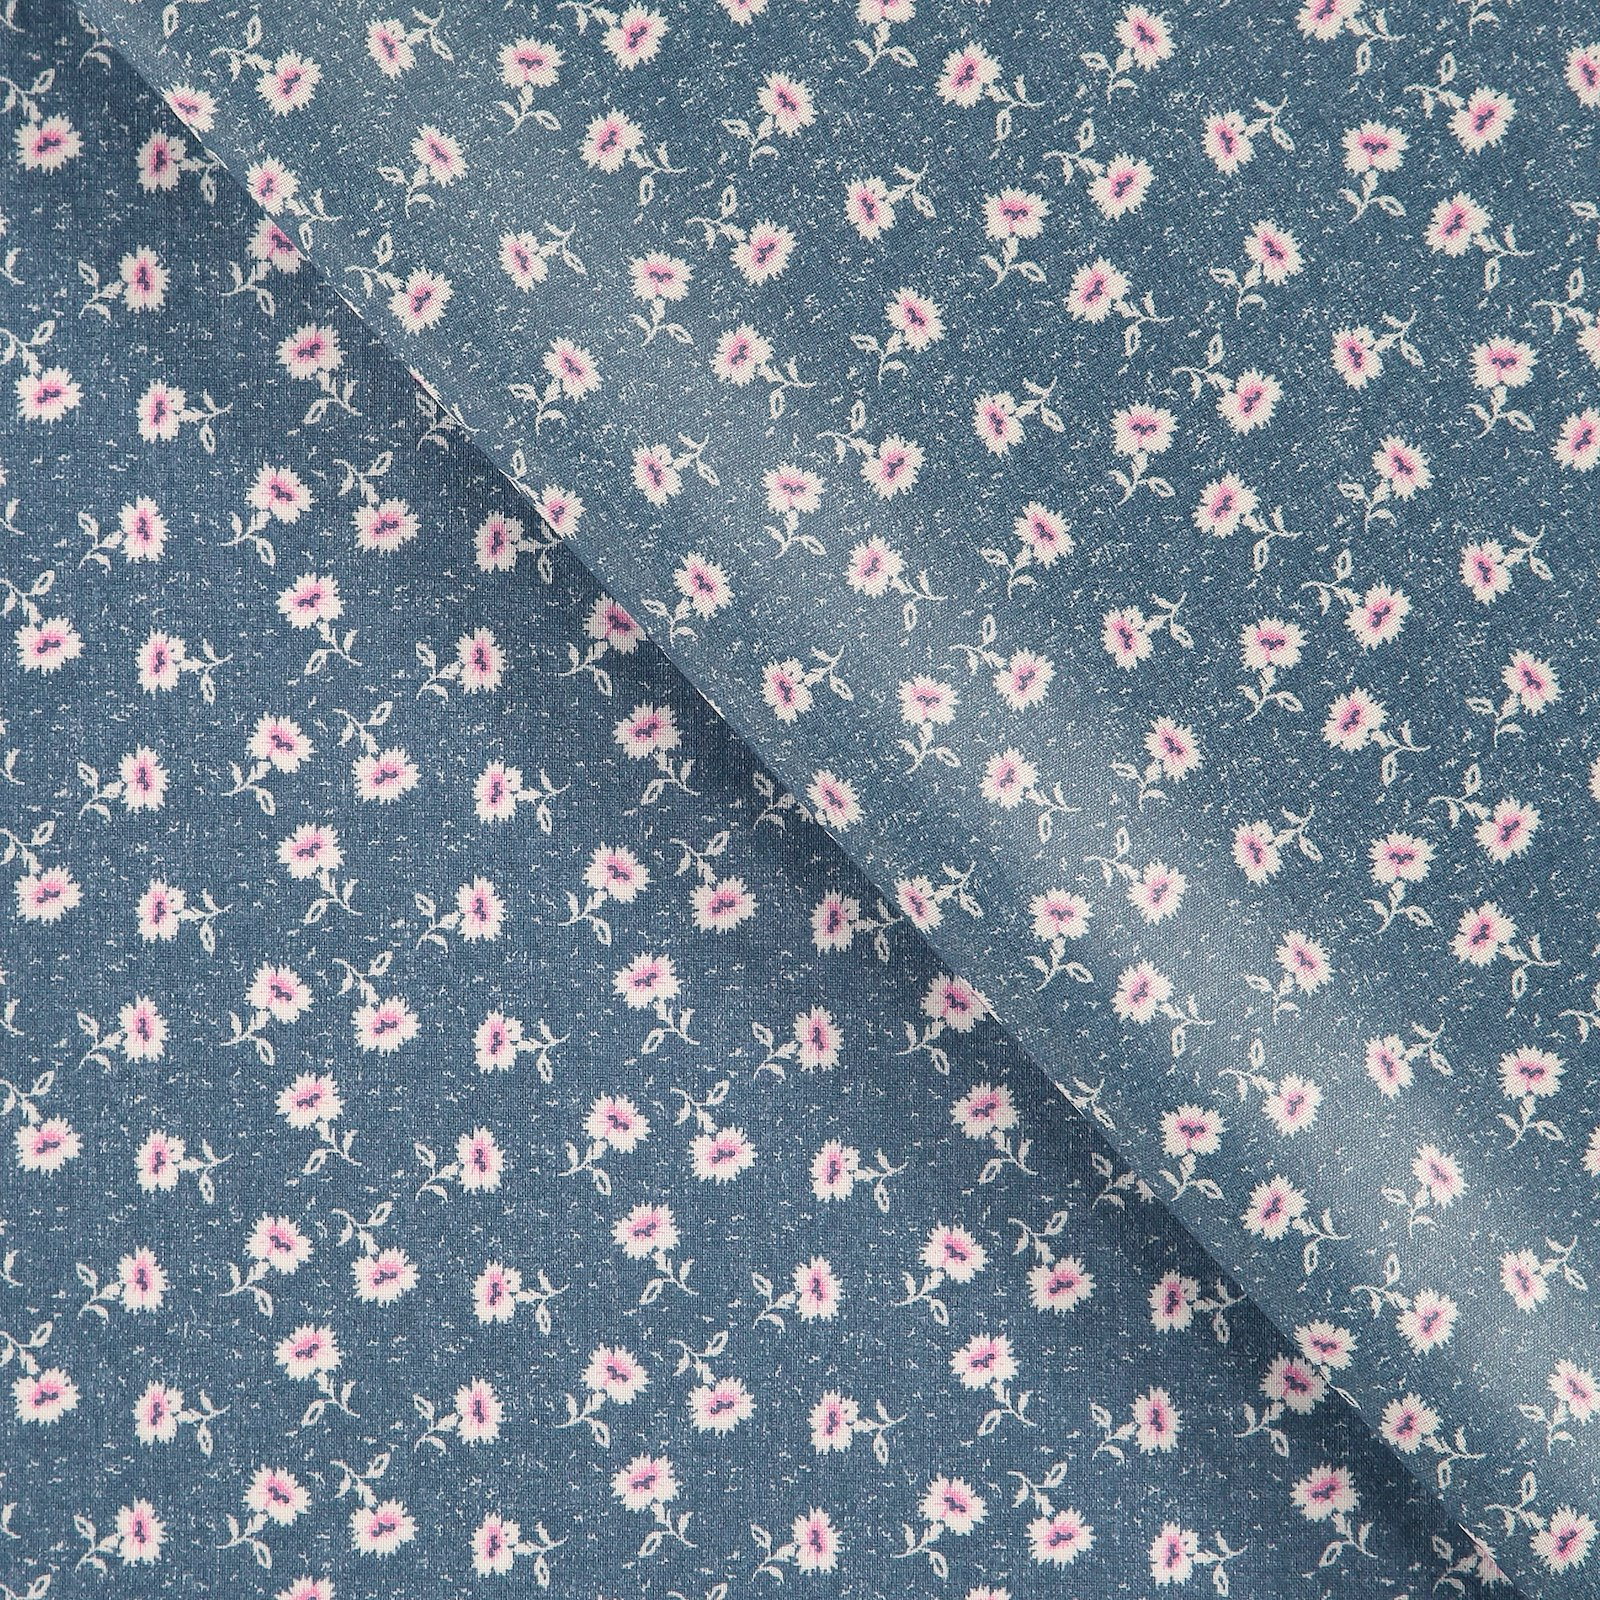 Woven oil cloth dusty blue with flowers